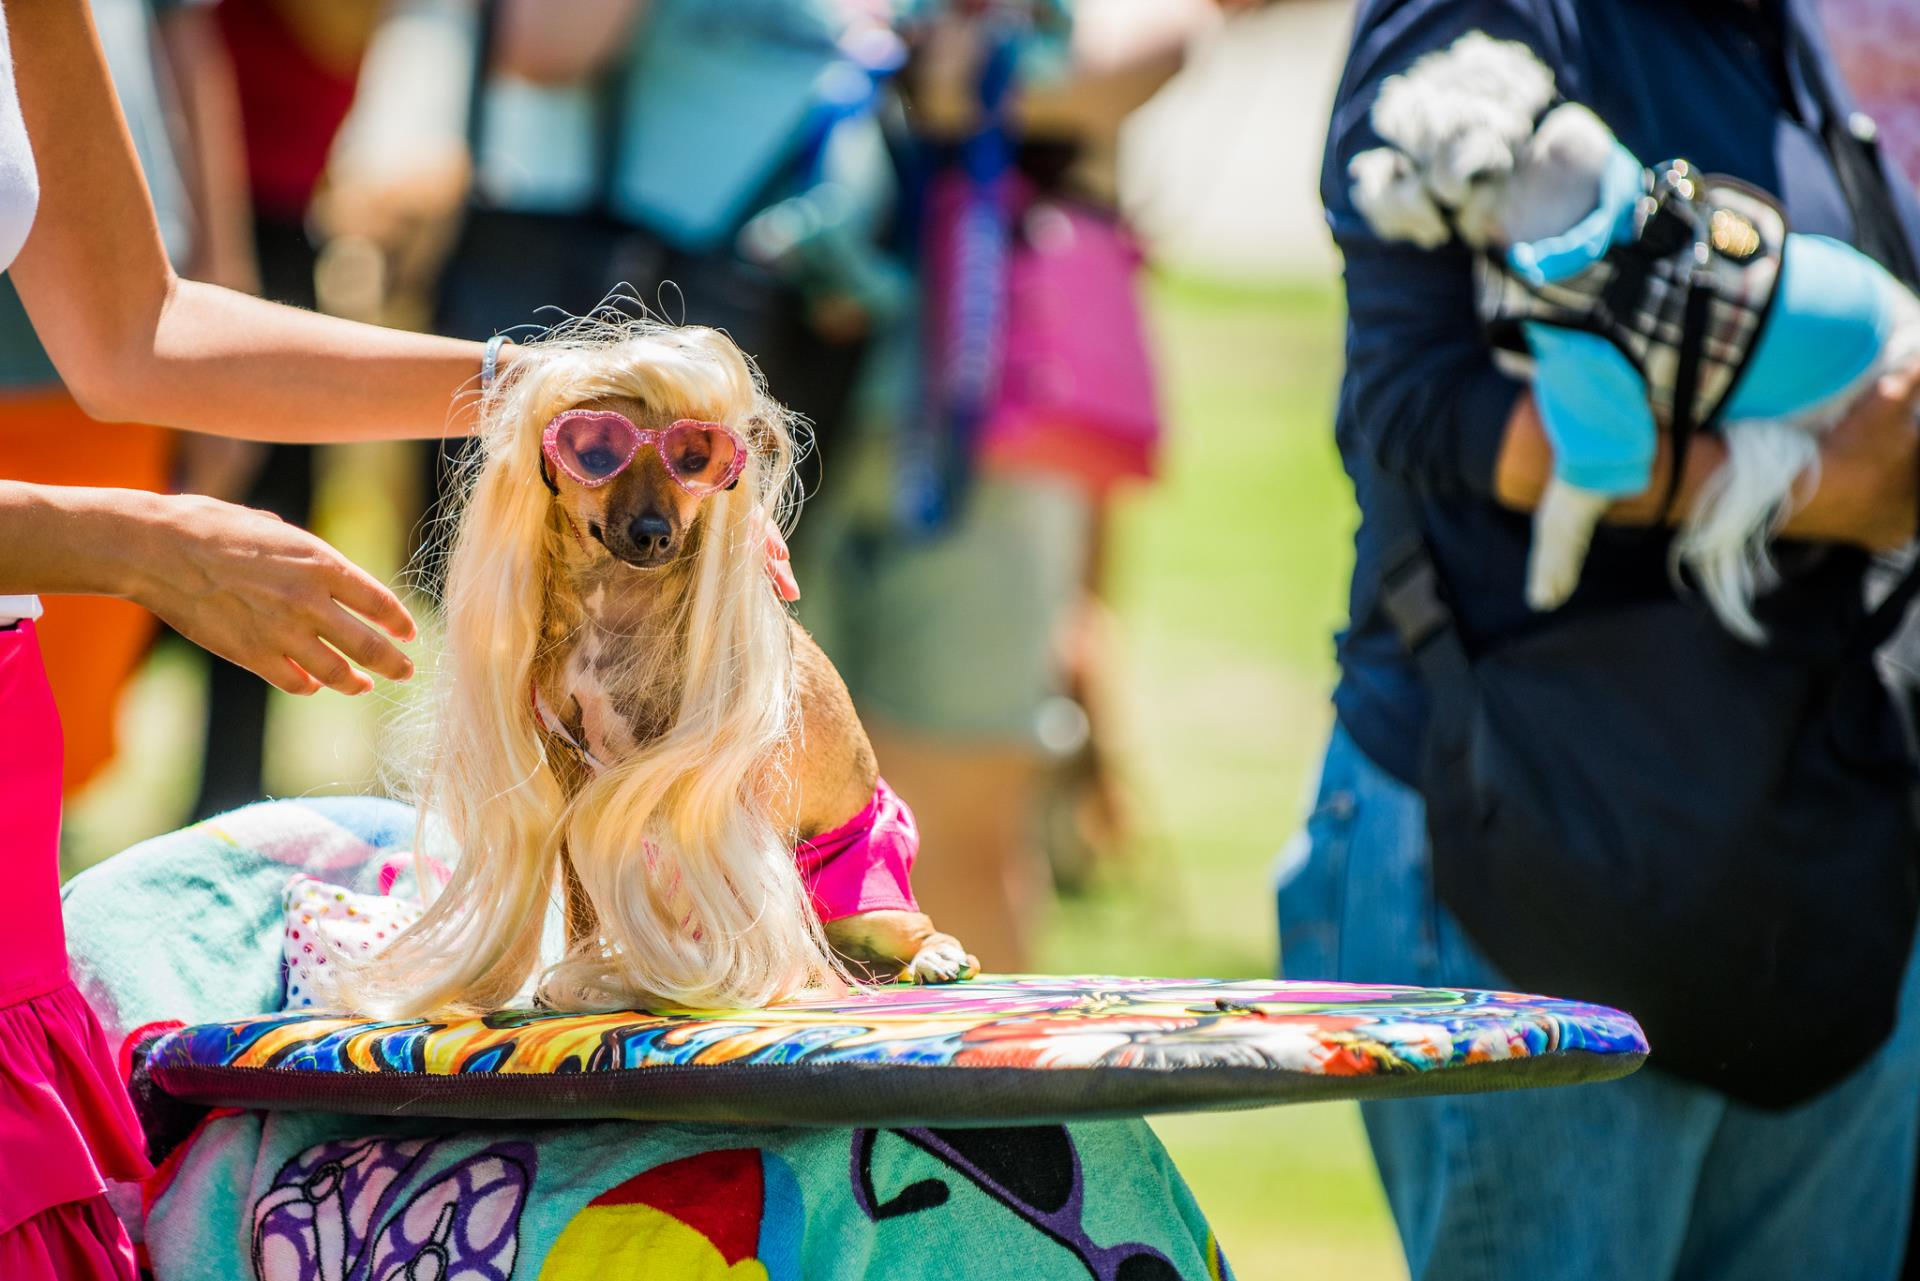 City Goes to the Dogs for PAWS/LA's PAWSAPALOOZA Festival